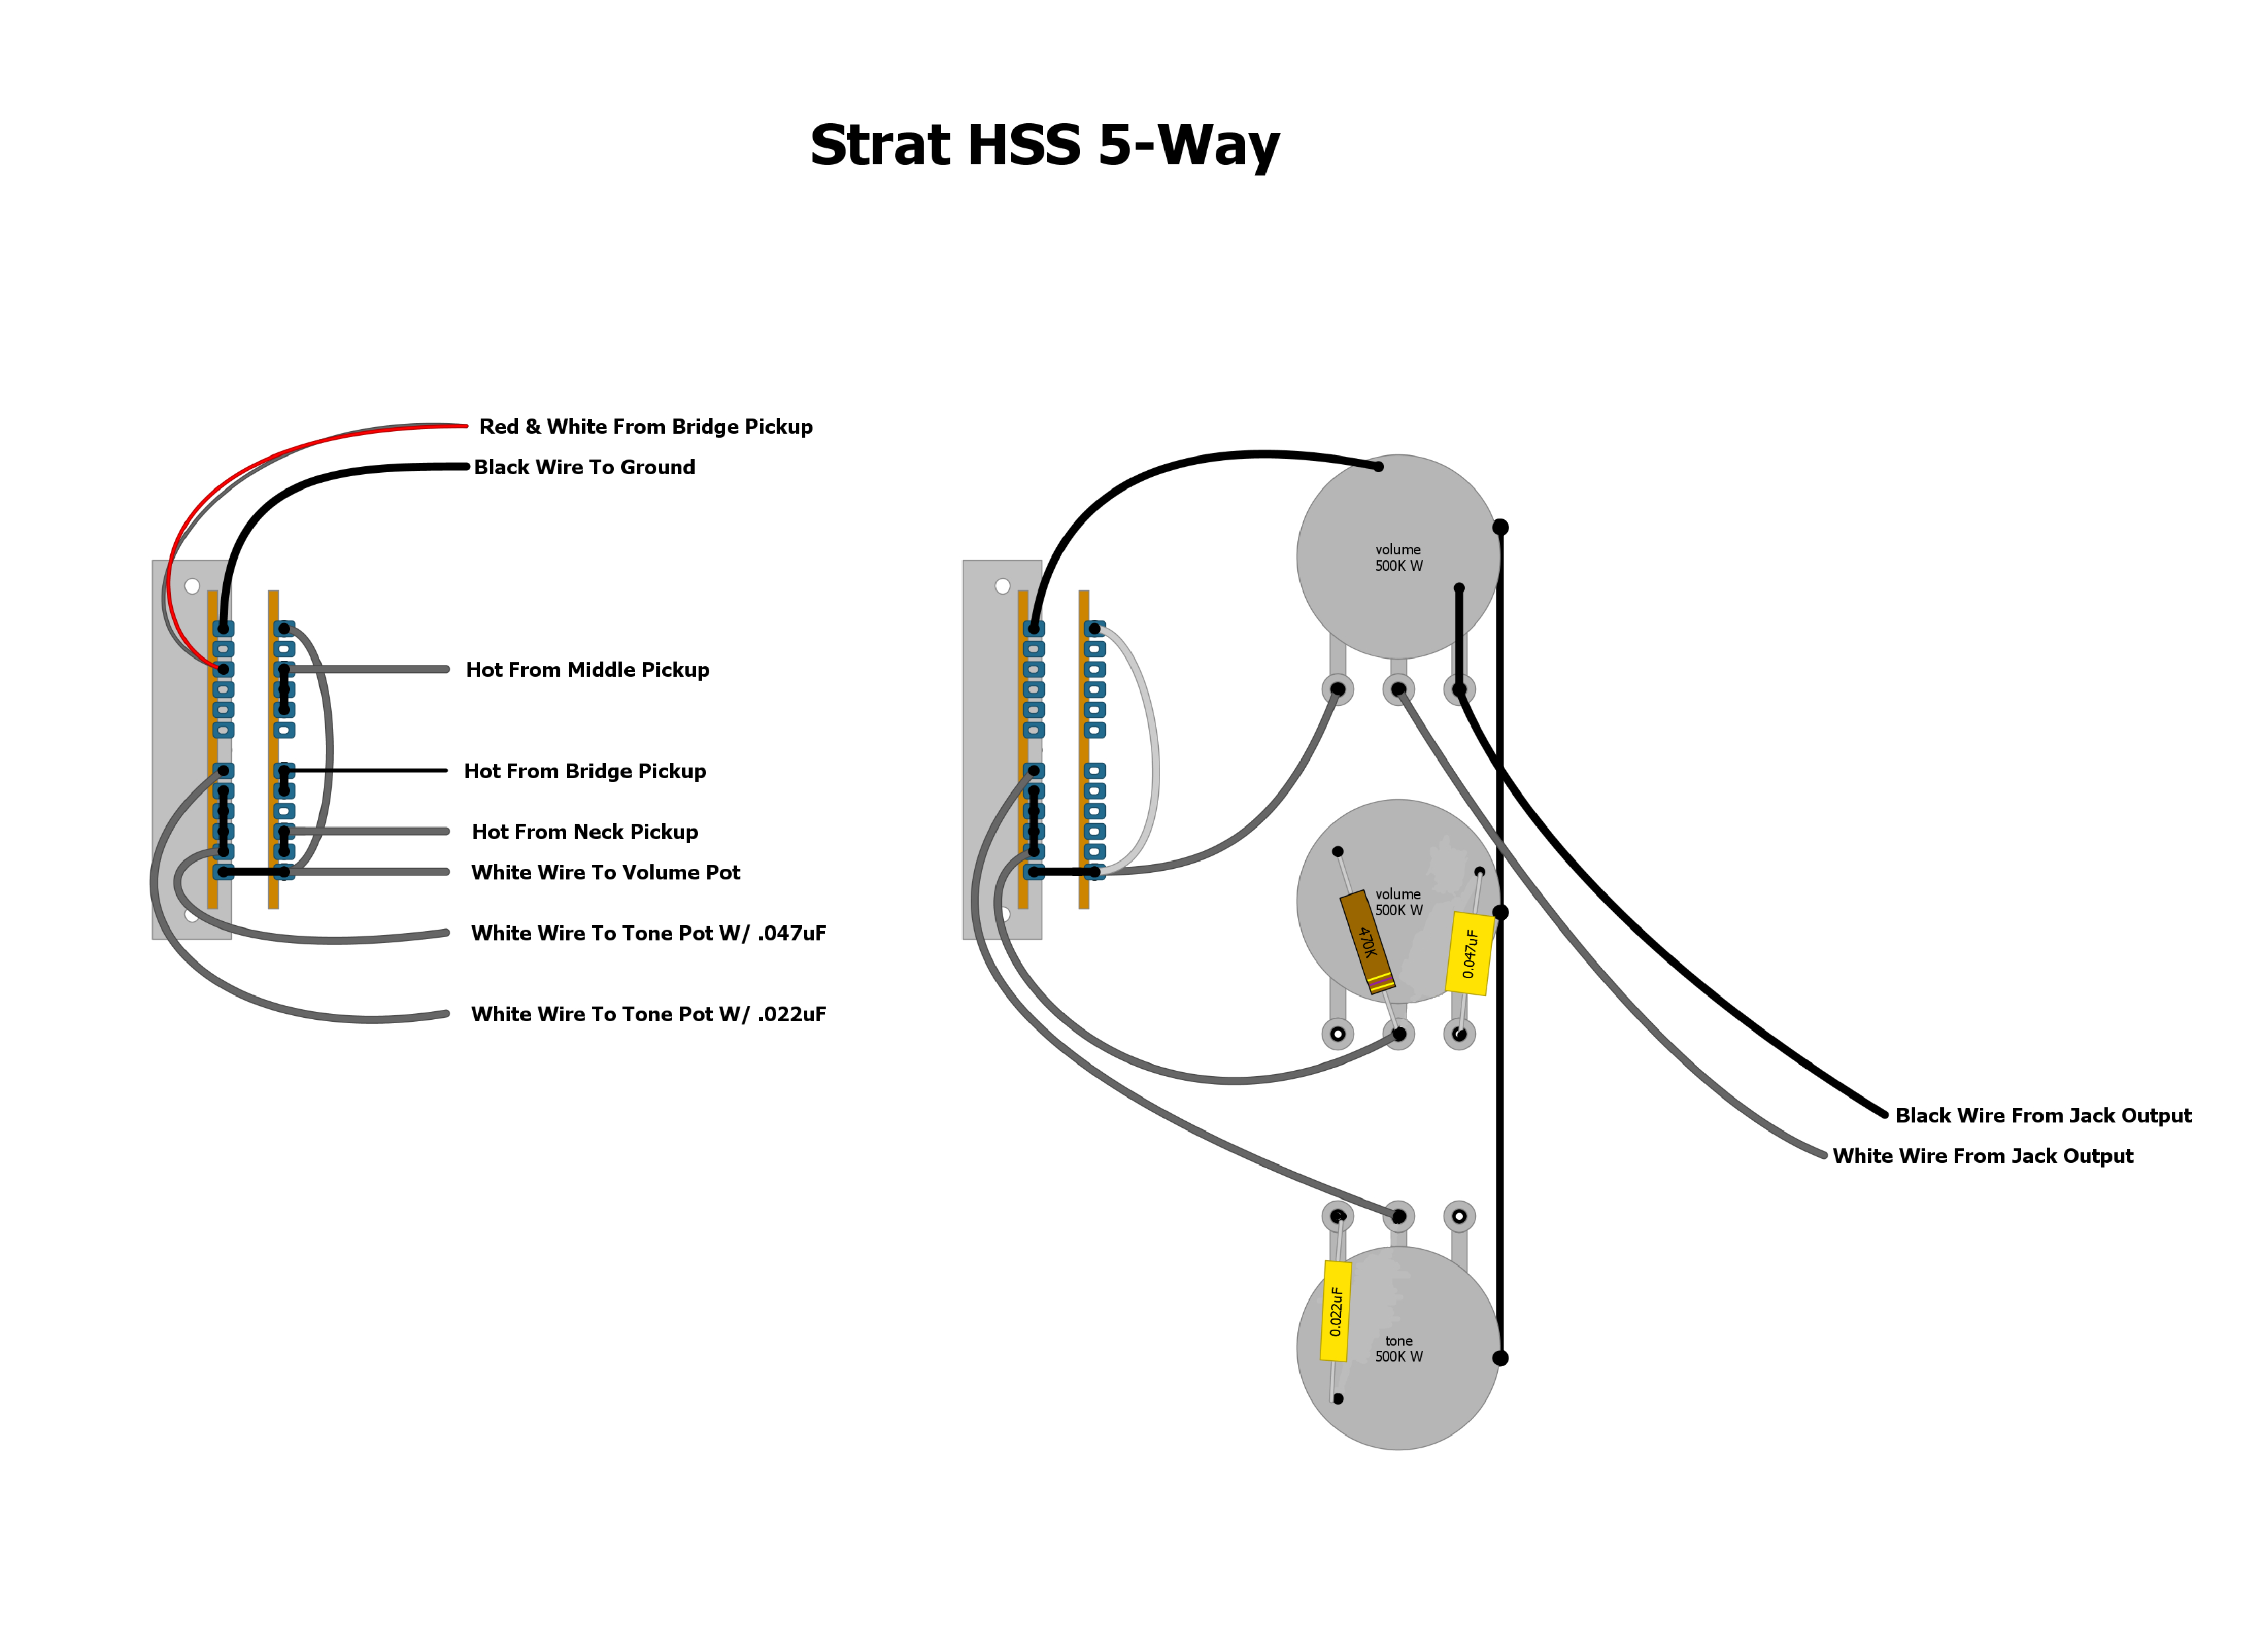 fender strat wiring diagram 5 way switch Download-Wiring Diagram for Fender Stratocaster 5 Way Switch Save Wiring Diagram Fender Strat 5 Way Switch 3-o